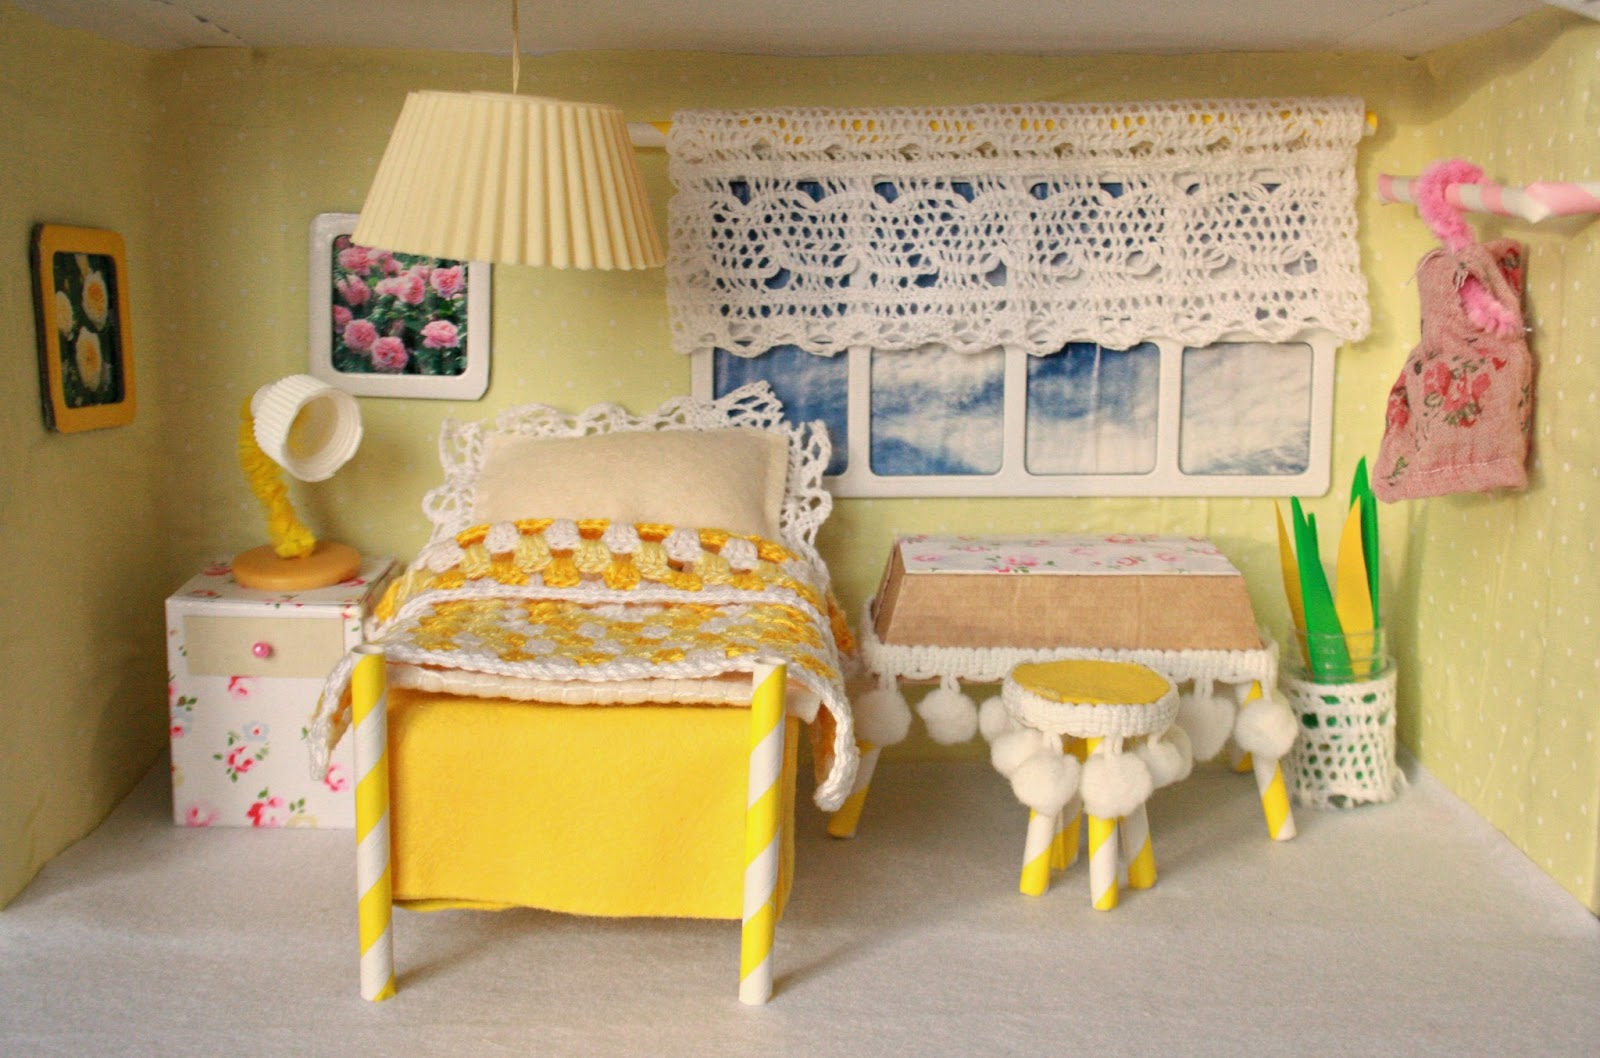 Bedroom In A Box >> Tales from a happy house.: A Shoebox Bedroom For A Little Mouse